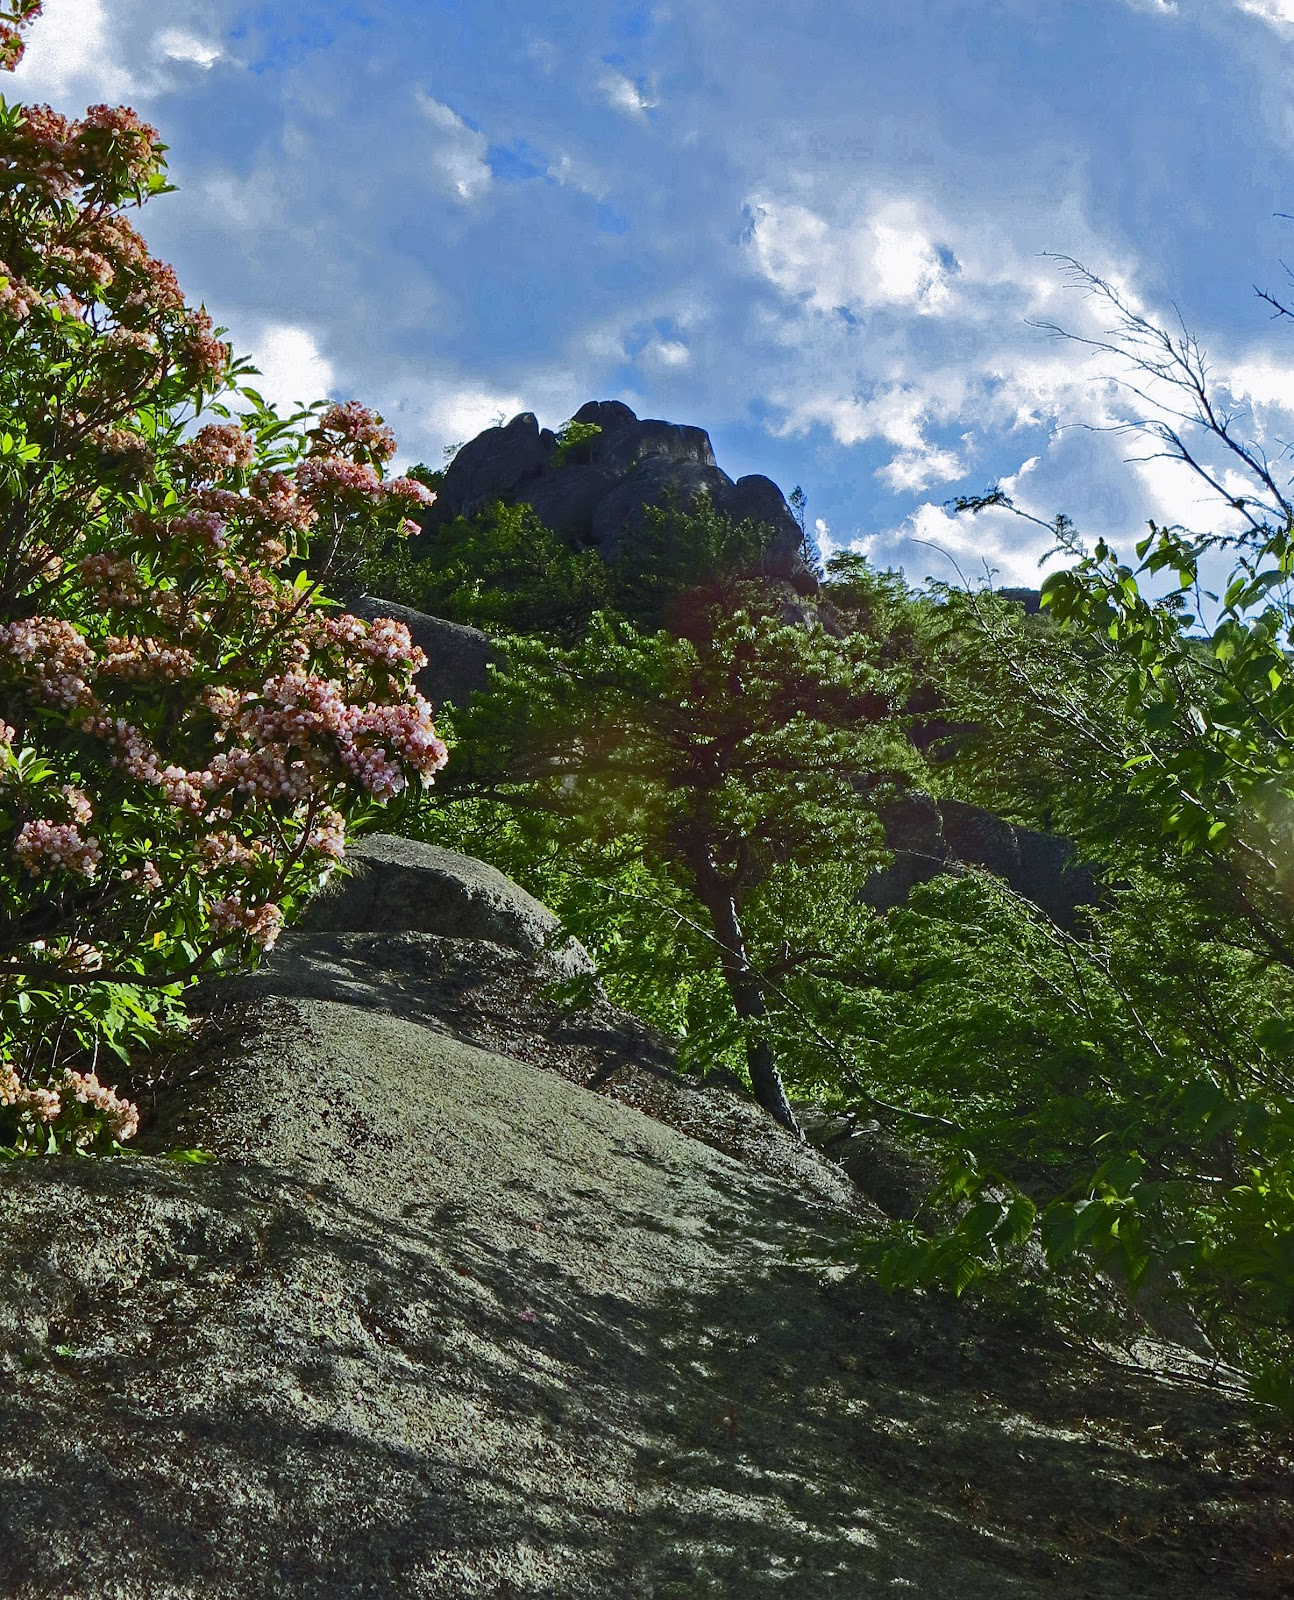 Hiking Old Rag Tips: Old Rag Mountain Hikes/Patrols By RSL: Sunday June 3, 2012